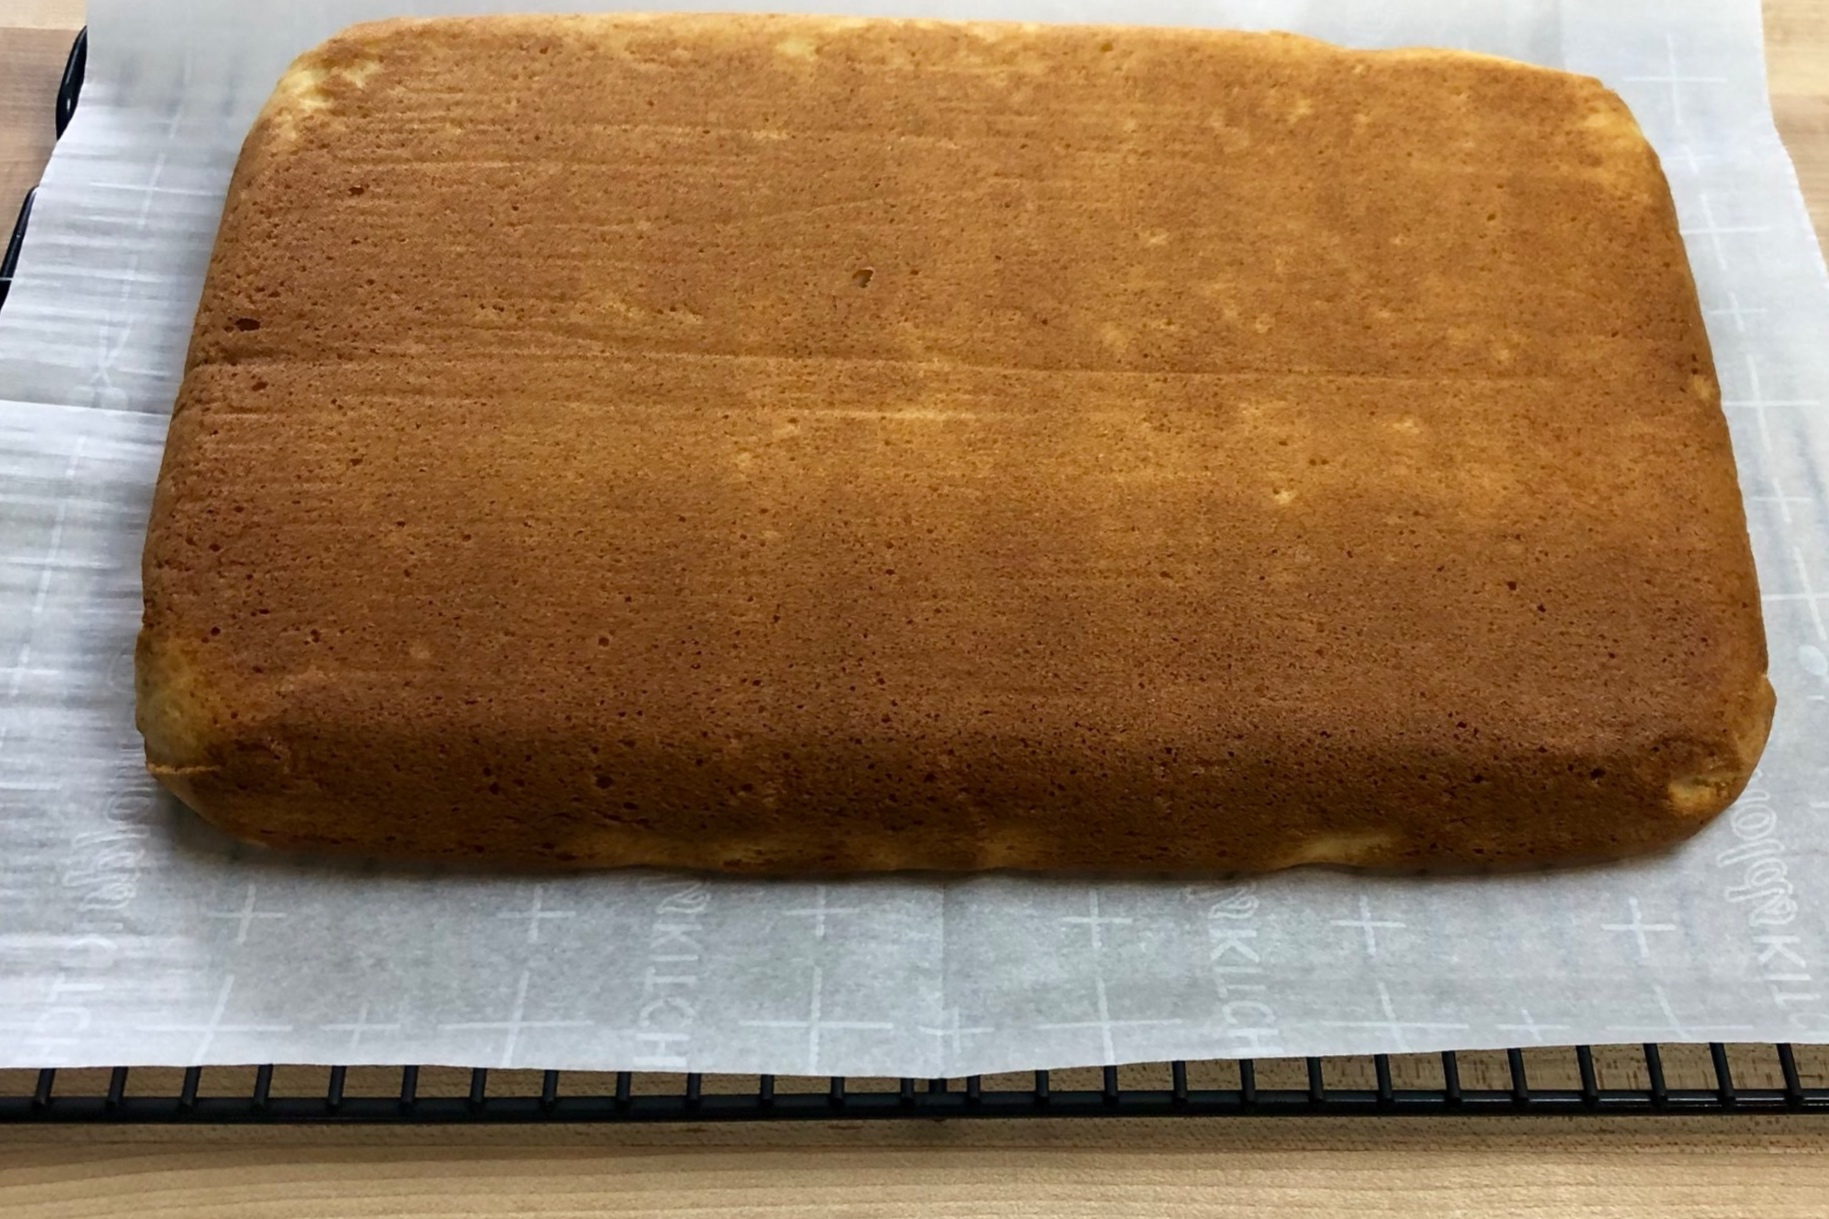 3. Using parchment paper, lift cake out of the dish and let cool completely on a wire rack. -